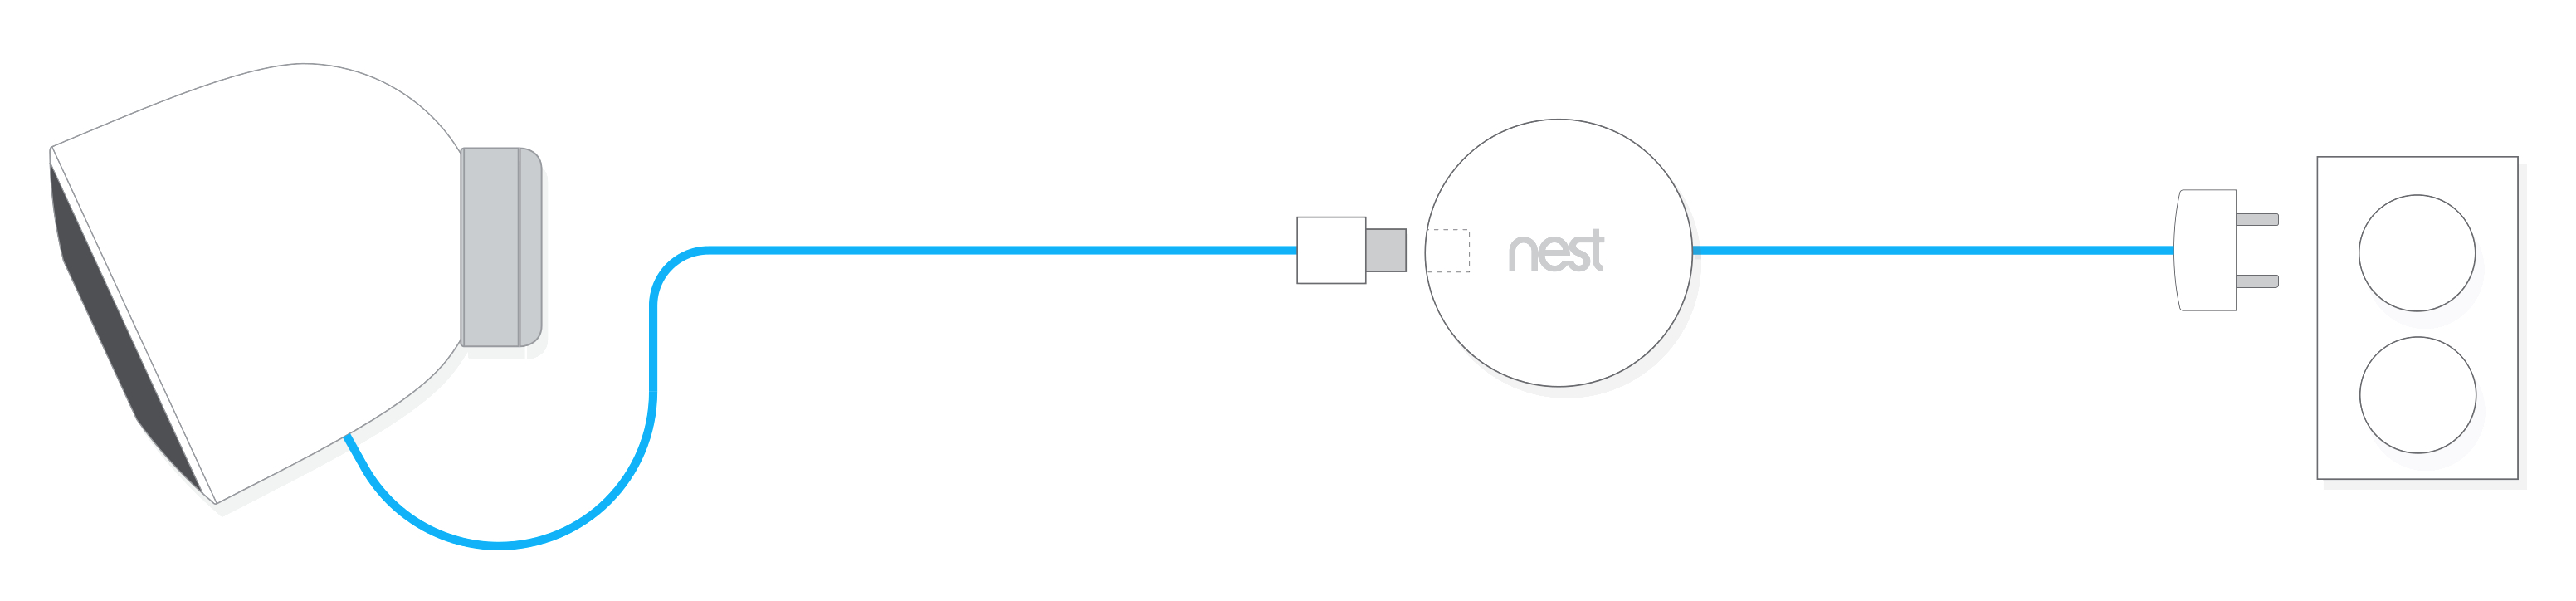 How To Install Your Outdoor Nest Cam - Nest Hub Wiring Diagram